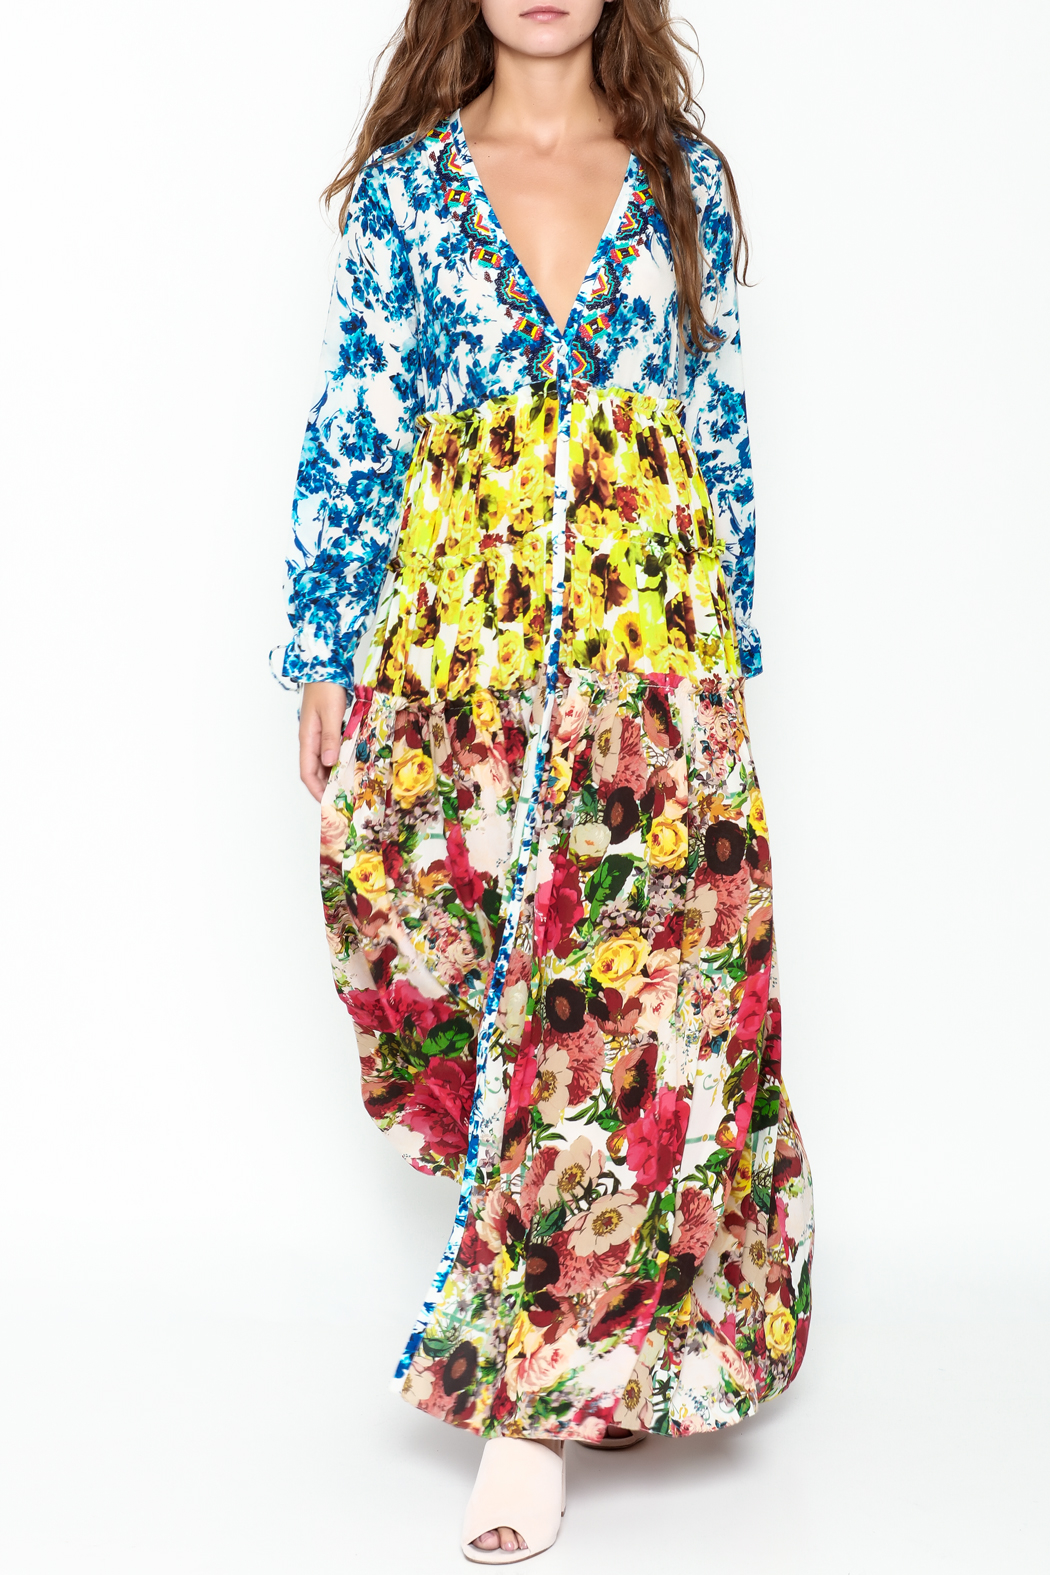 Rococo Sand Multicolored Maxi Dress - Main Image